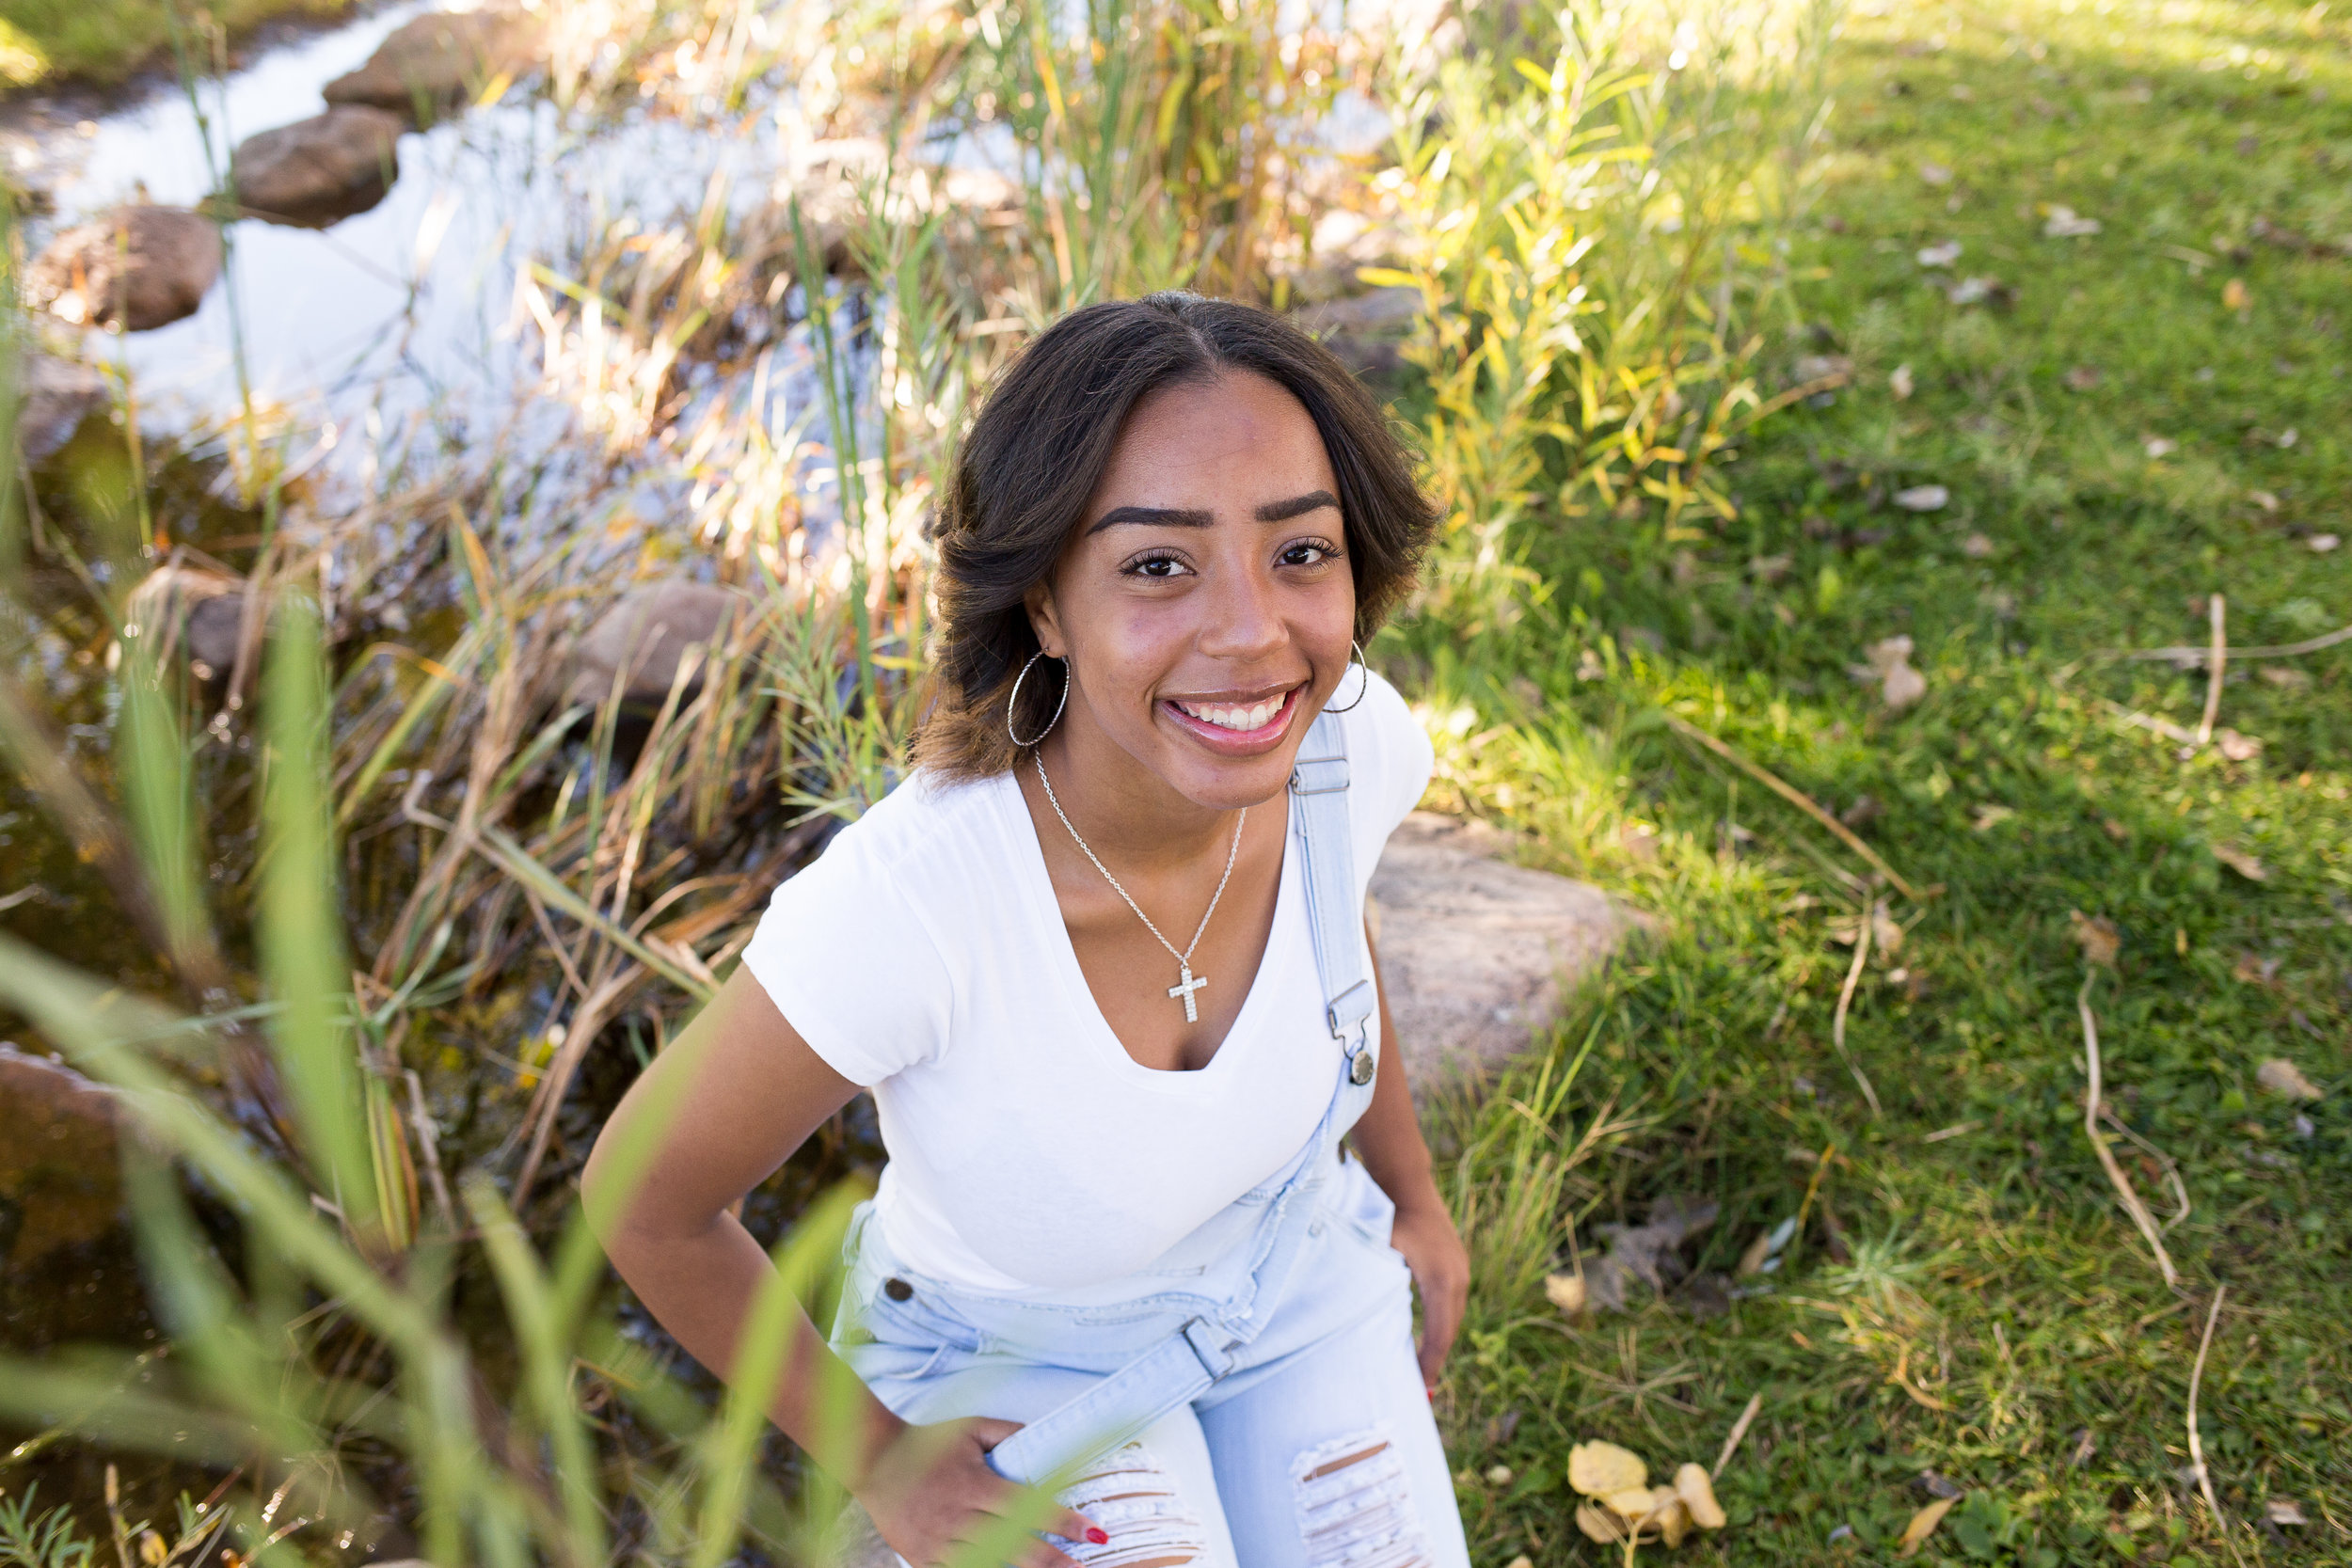 Colorado Springs Senior Photography at Fountain Creek Regional Park Girl sitting by river and tall grasses smiling at camera Stacy Carosa Photography